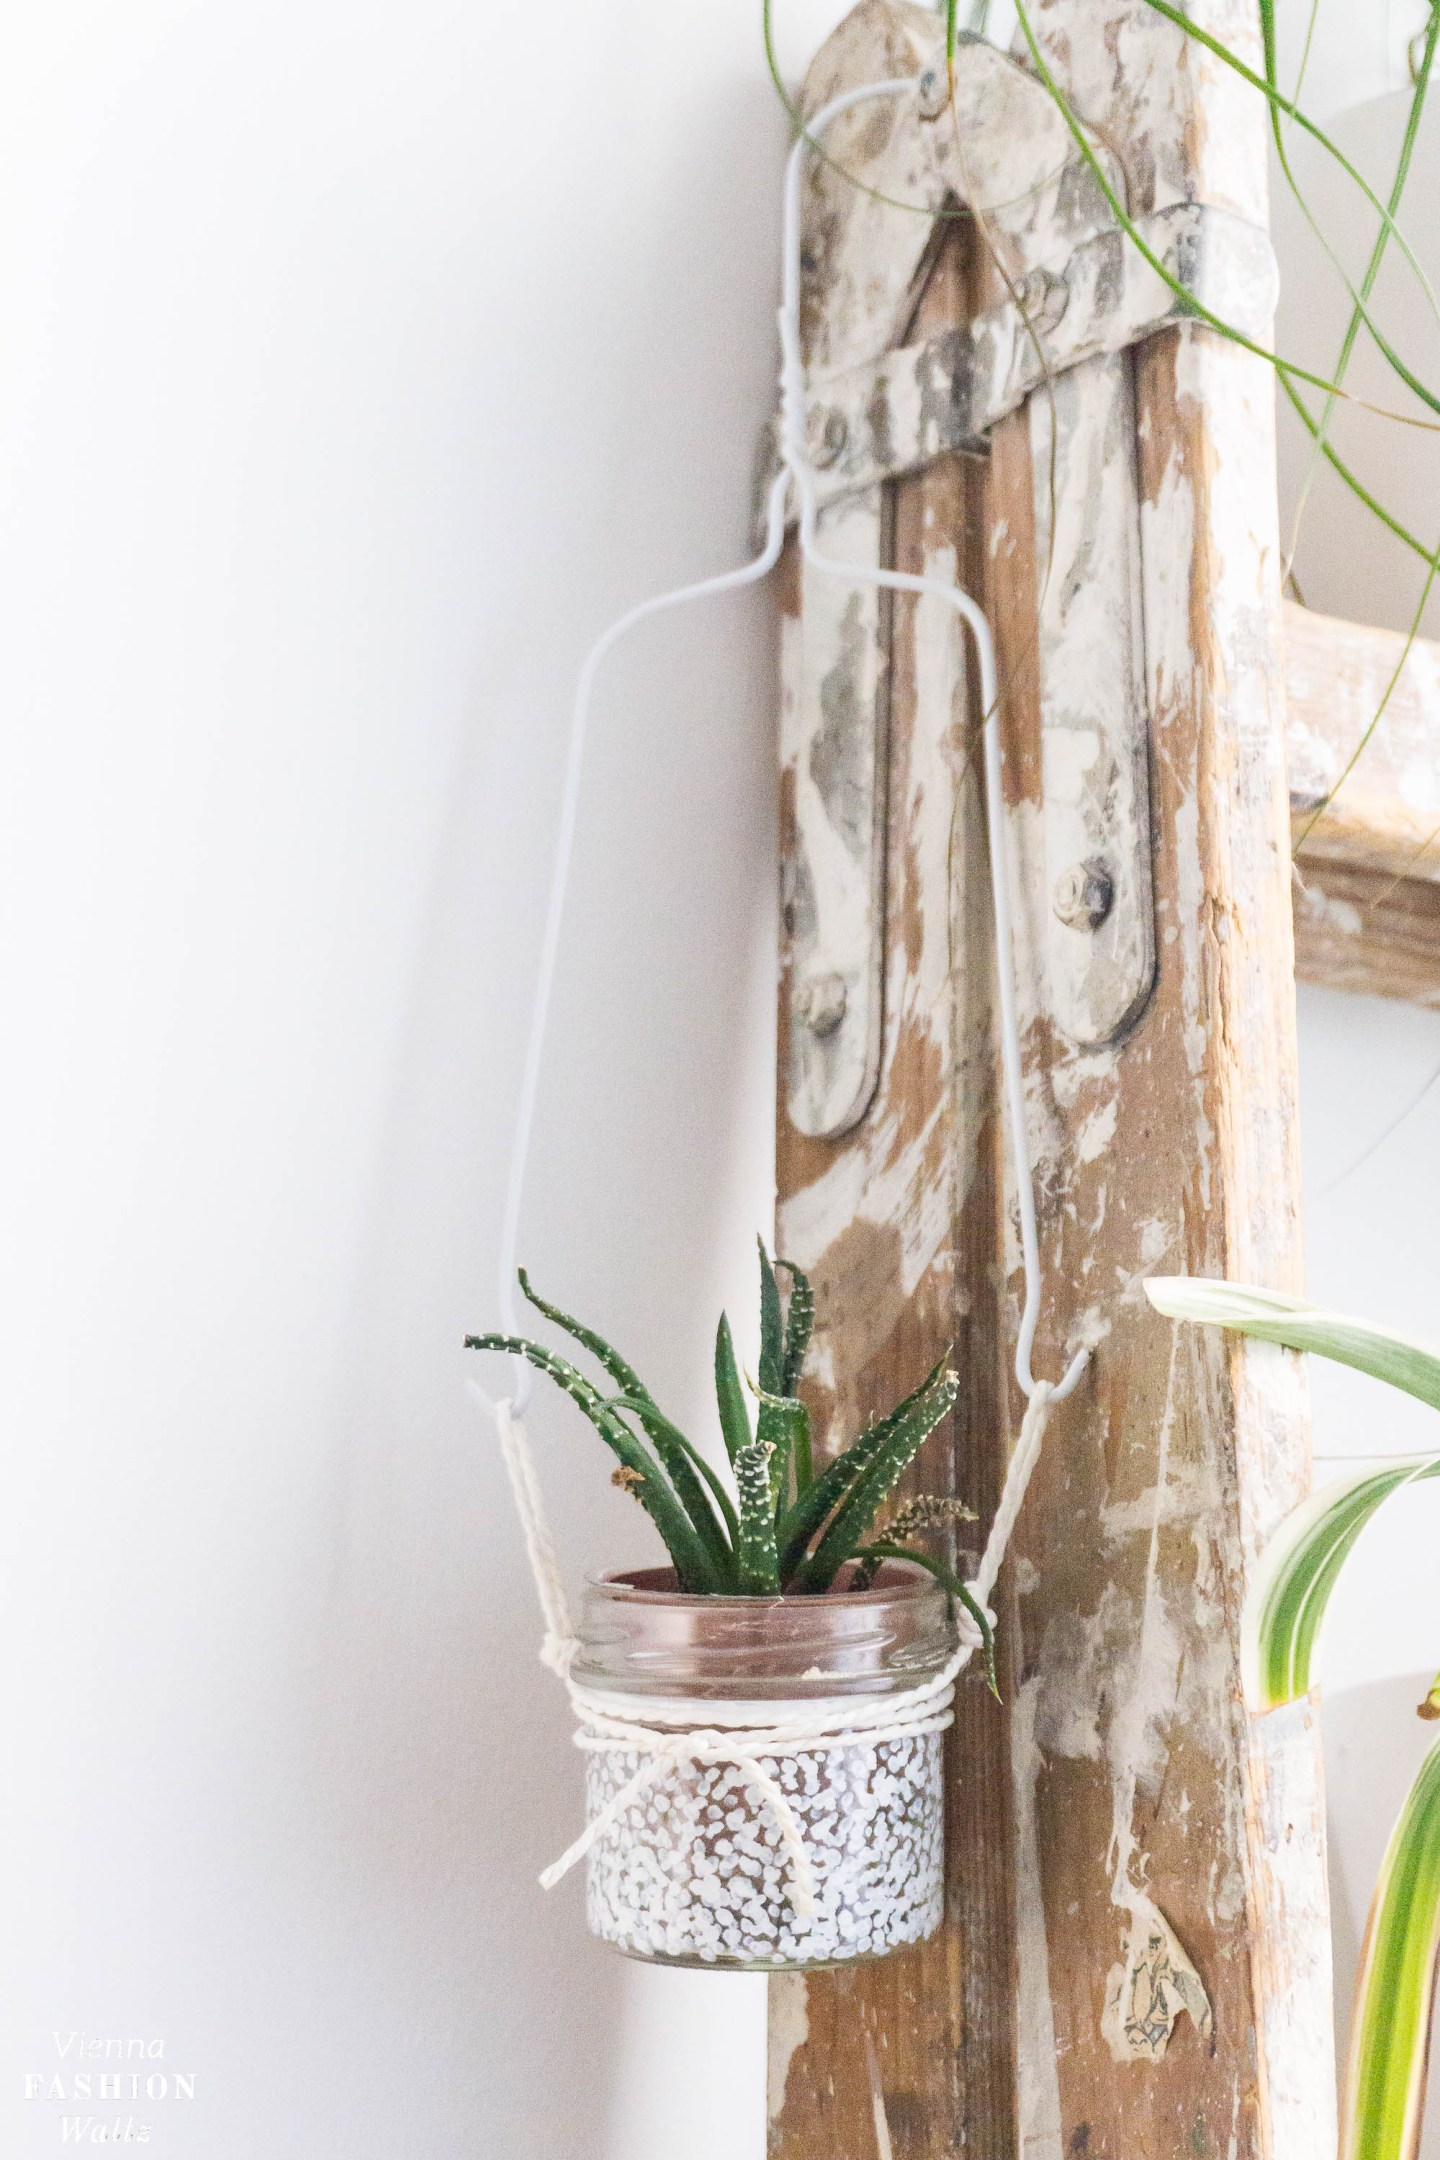 DIY Blumentopf zum Aufhängen | Upcycling Wall Planters, plantshelvie, urbanjunglebloggers, Zimmerpflanzen. Wohnideen, green living, Leben mit Pflanzen, Deko, Urban Jungle Ideen | DIY Indoor Garden Plant Ideas | Grünlilien, Pflanzenwand, hanging plants | Blog Vienna Fashion Waltz